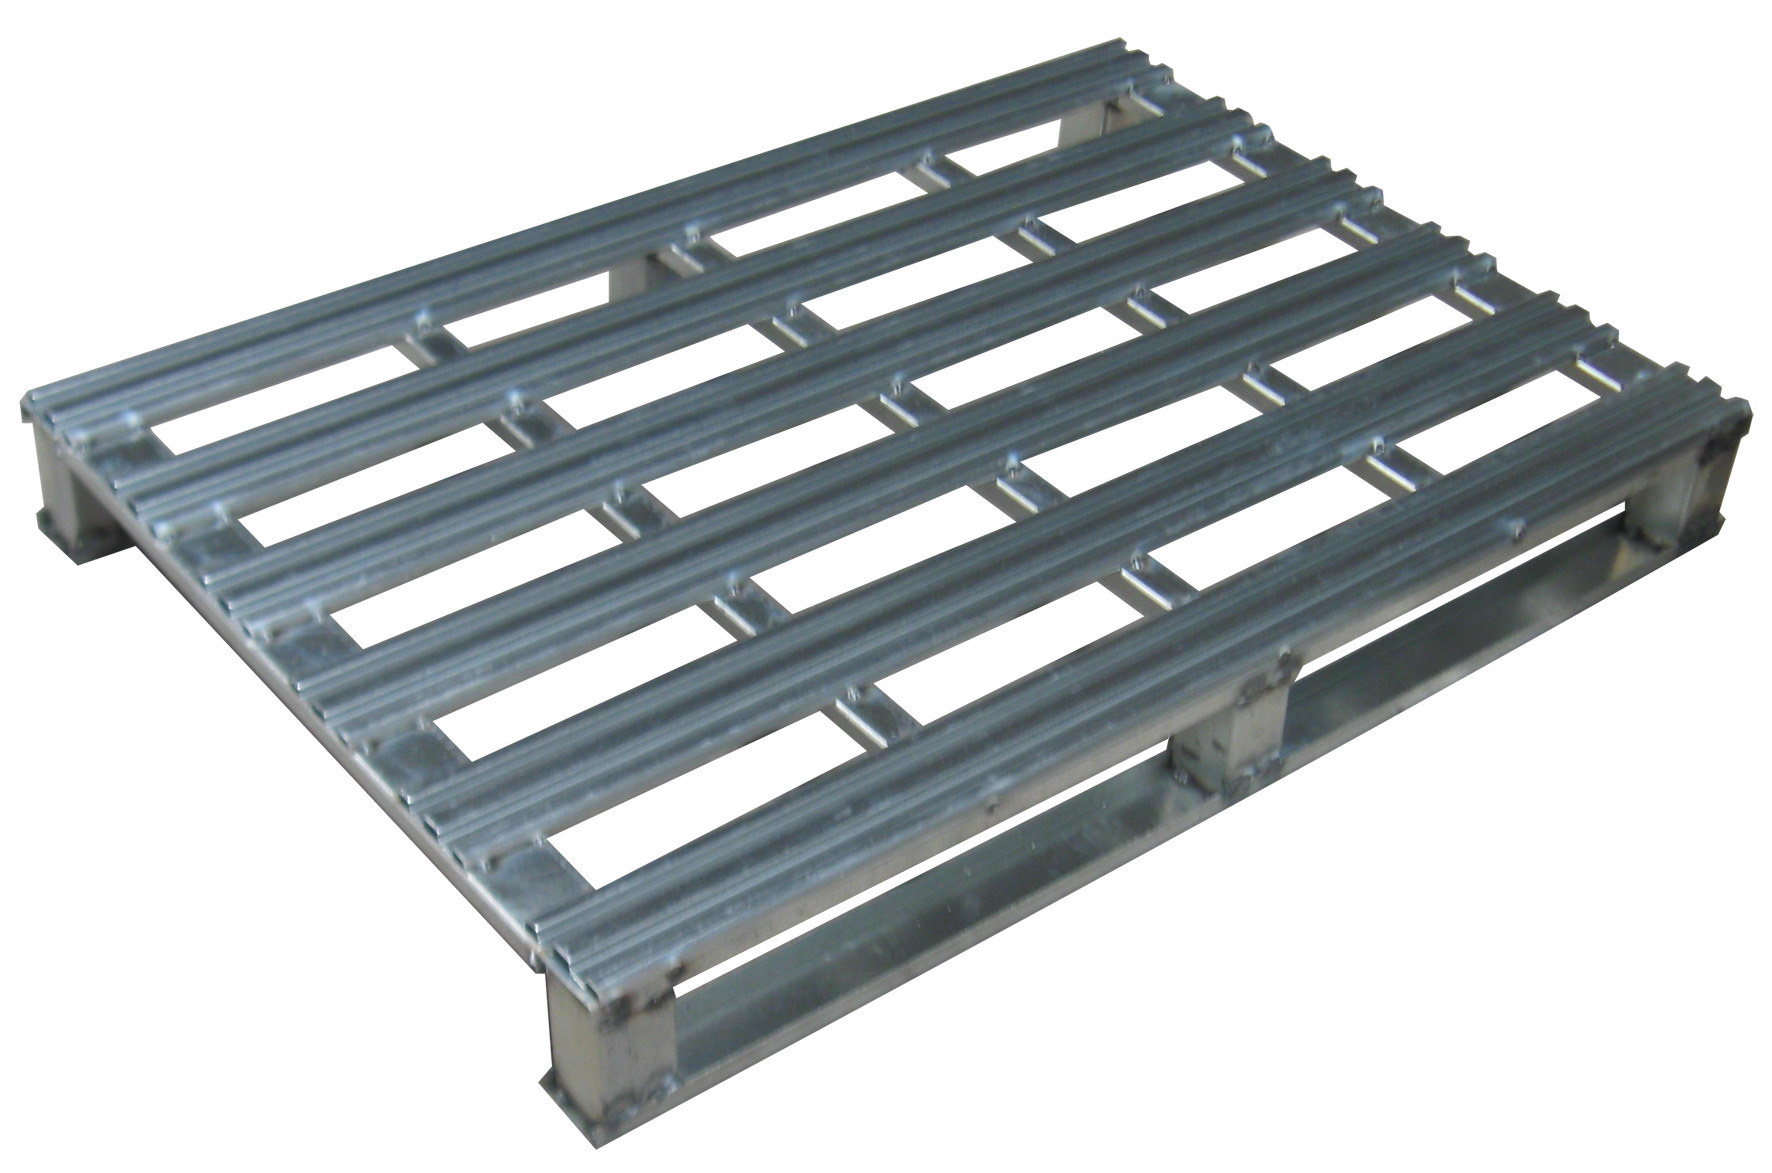 China Metal Pallet Photos & Pictures - Made-in-china.com